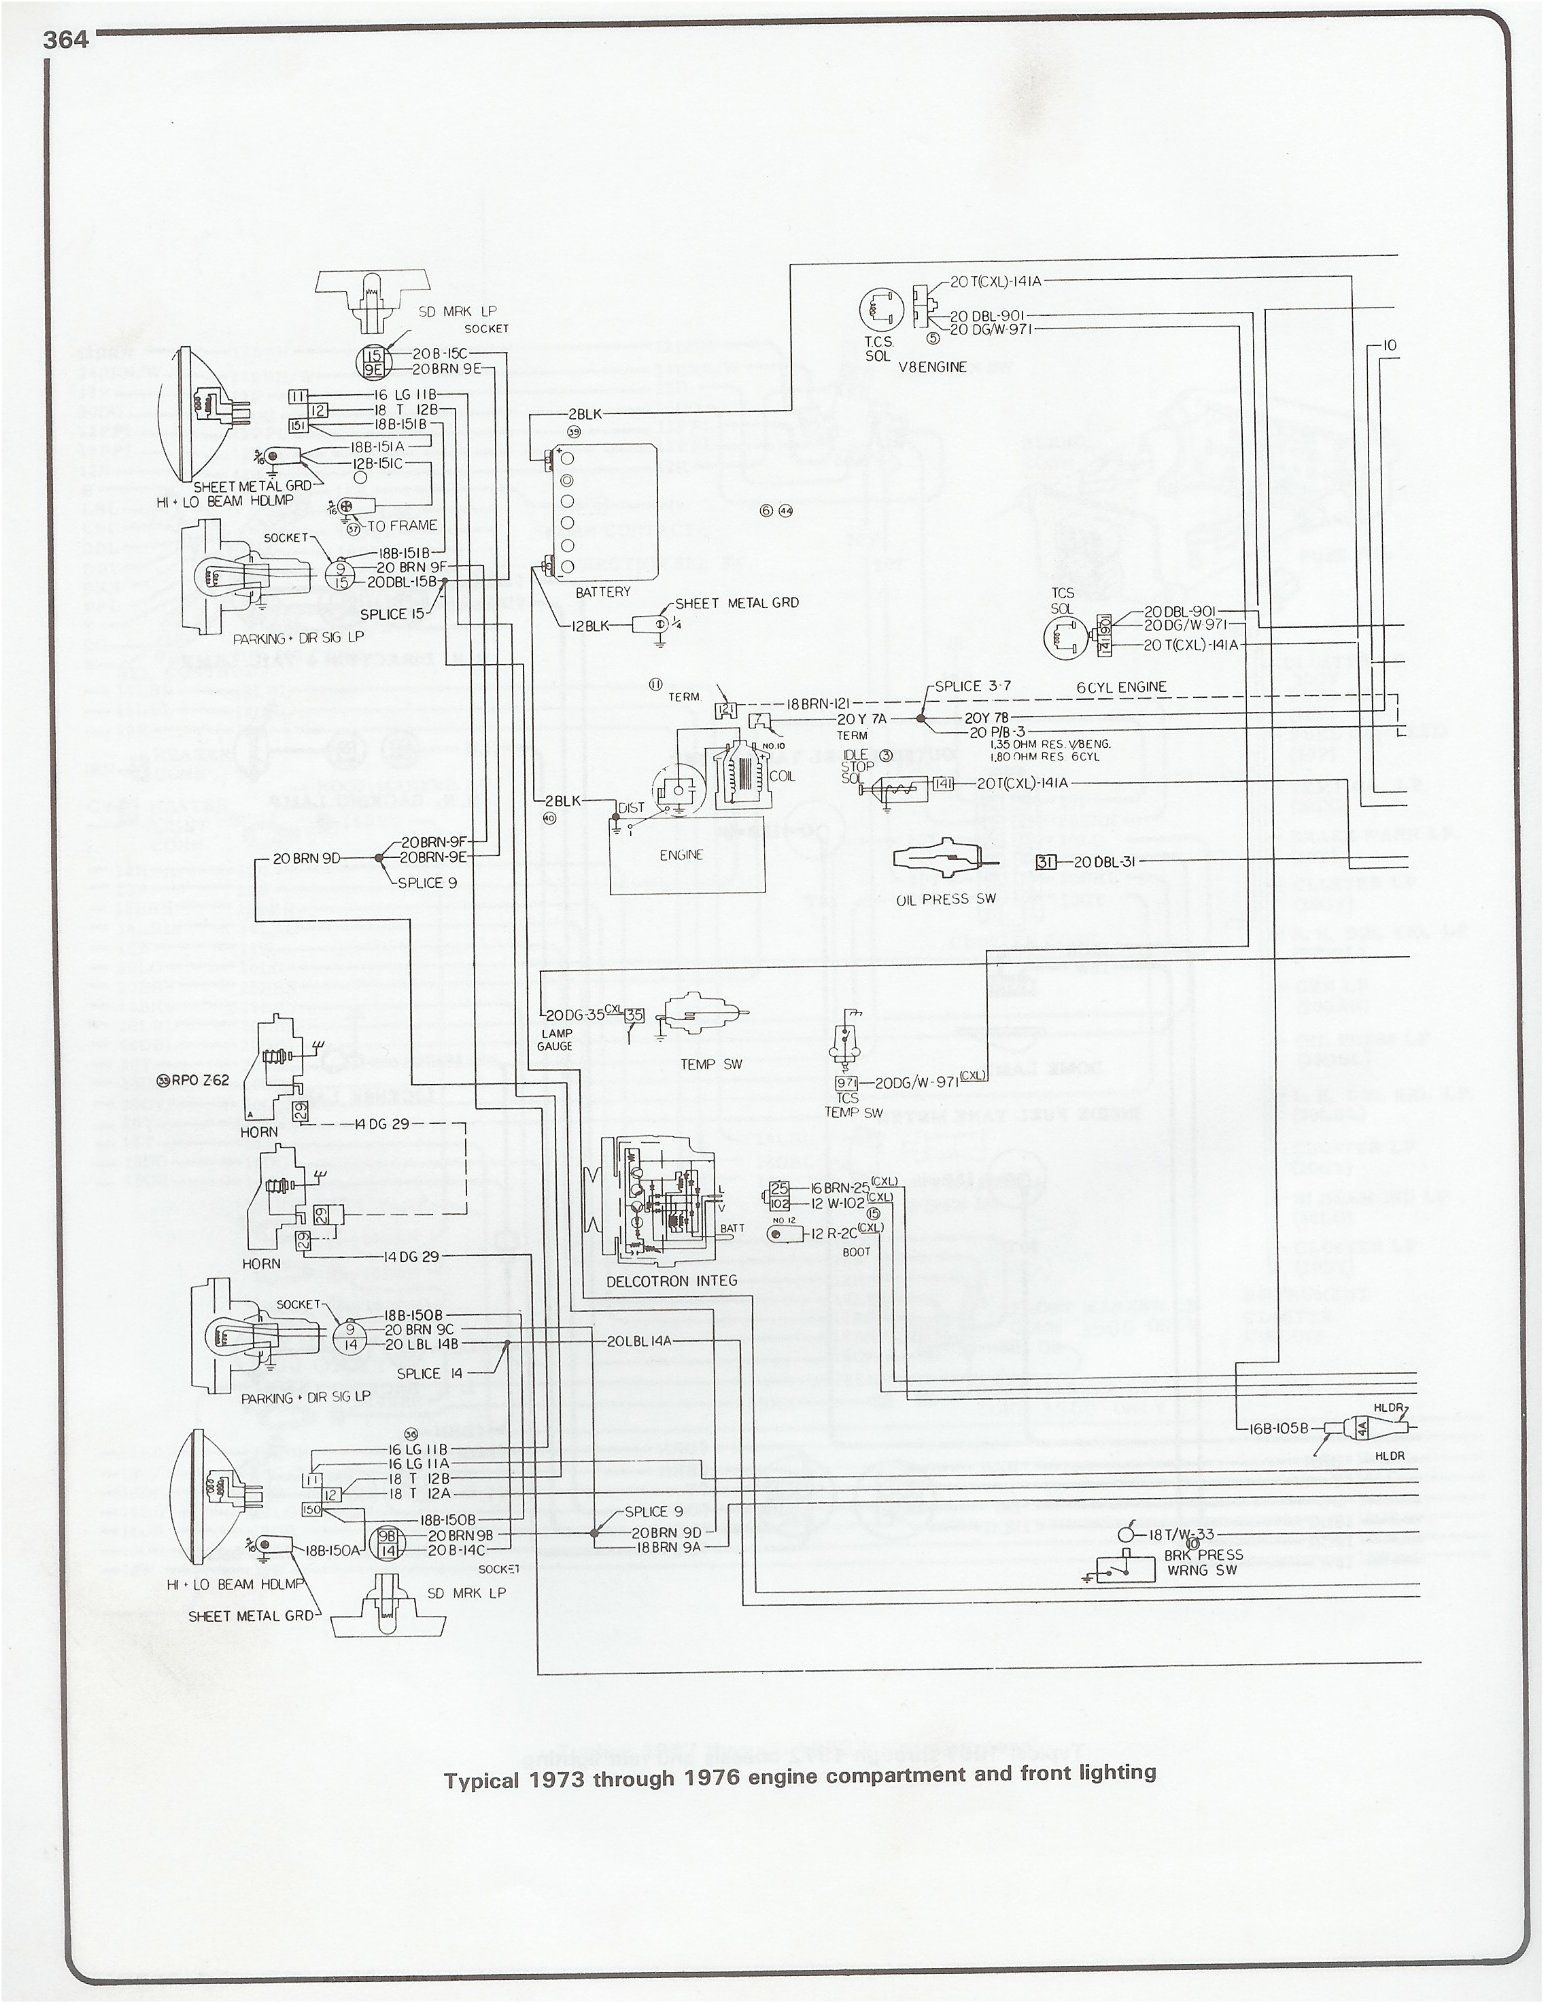 medium resolution of wiring diagram 1973 1976 chevy pickup chevy wiring diagram 1974 chevy pickup wiring